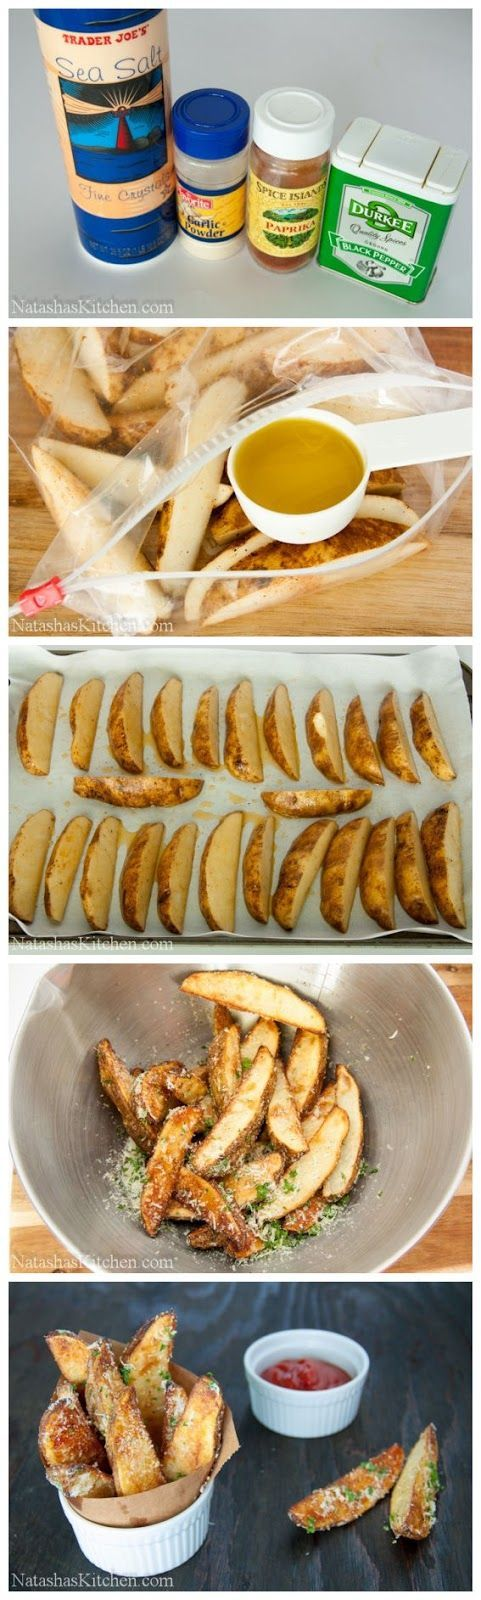 Oven Baked Potato Wedges Recipe Ingredients: 4 russet potatoes 1/4 cup extra virgin olive oil 1/4 tsp sea salt or kosher salt 1/4 tsp garlic powder 1/4 tsp paprika 1/4 tsp black pepper 2 Tbsp chopped fresh parsley leaves 1/4 cup parmesan cheese